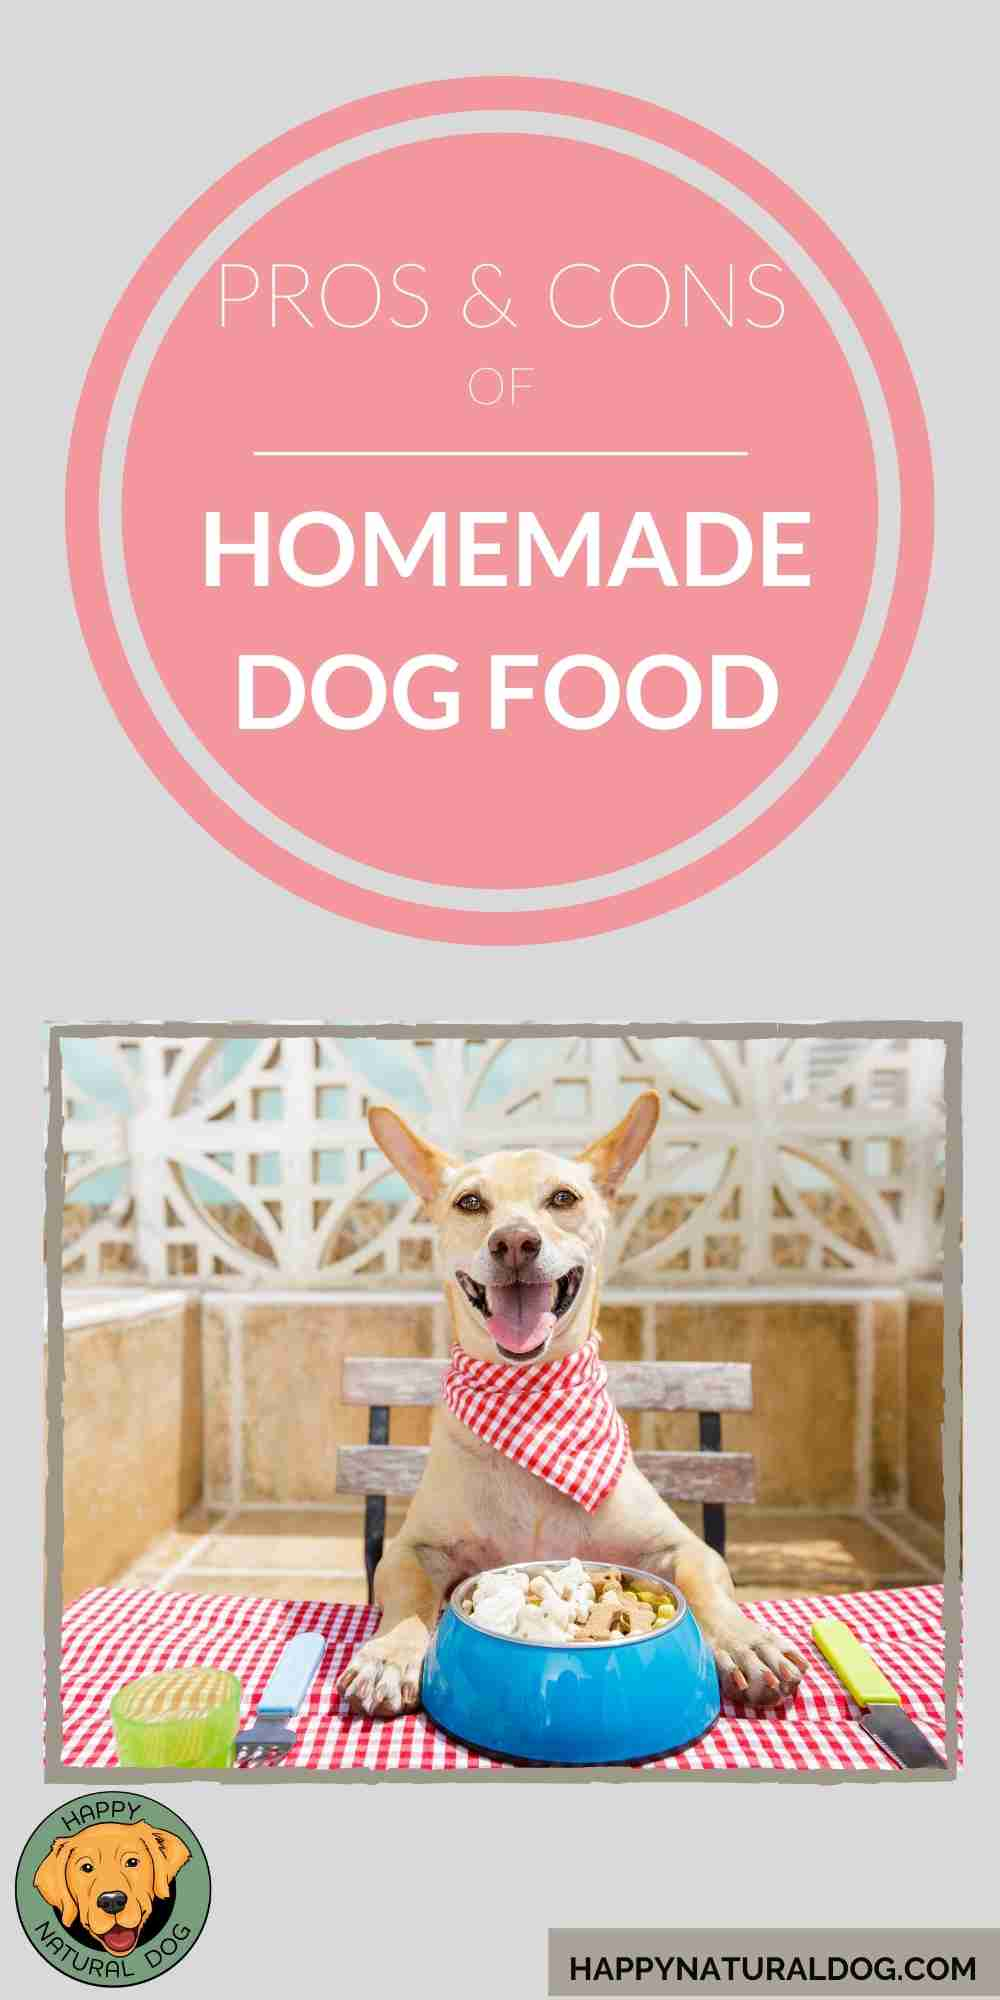 Pros & Cons of Homemade Dog Food